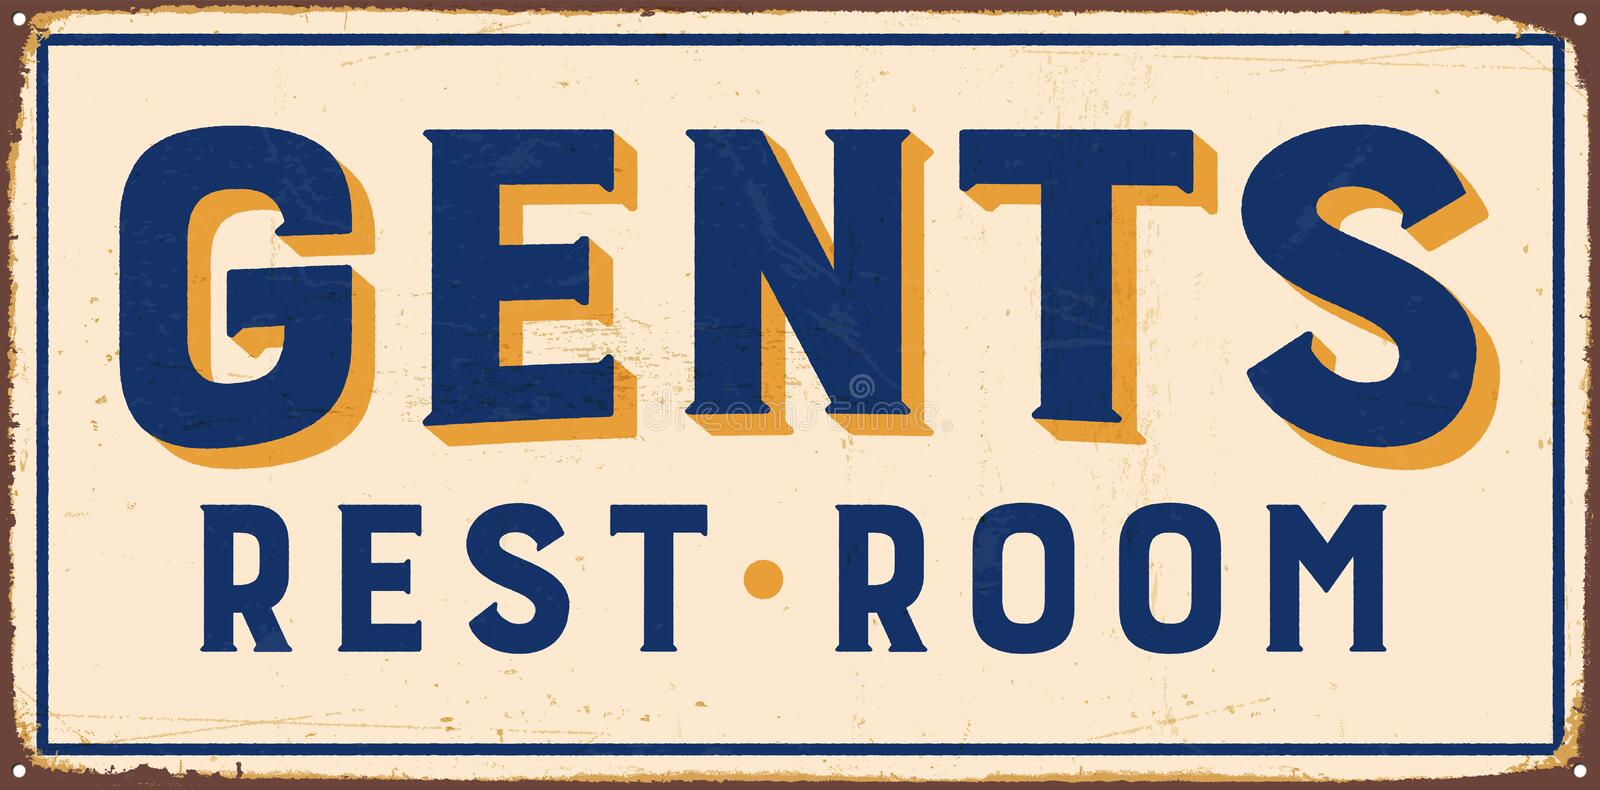 Vintage Metal Sign. Vintage Vector Metal Sign - Gents Rest Room - with a realistic used and rusty effect that can be easily removed for a clean, brand new sign royalty free illustration